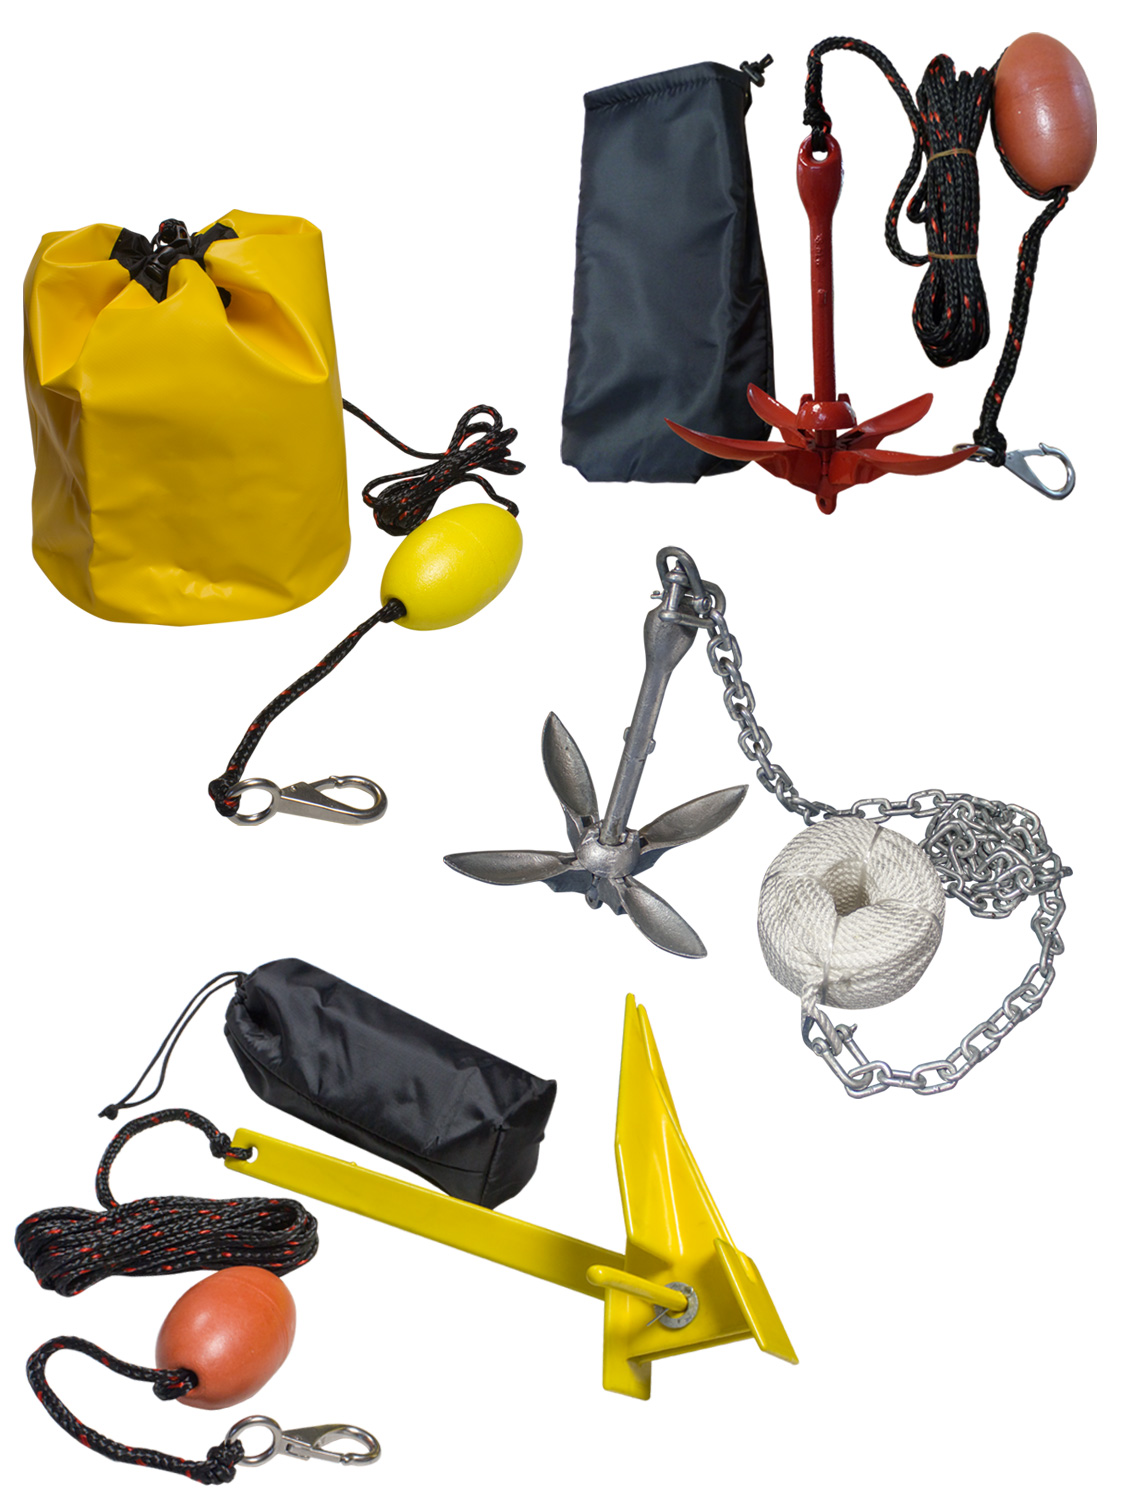 Folding Anchor Kits Kayaks Canoes Dinghy Boats With Ropes Portable Sand Bag